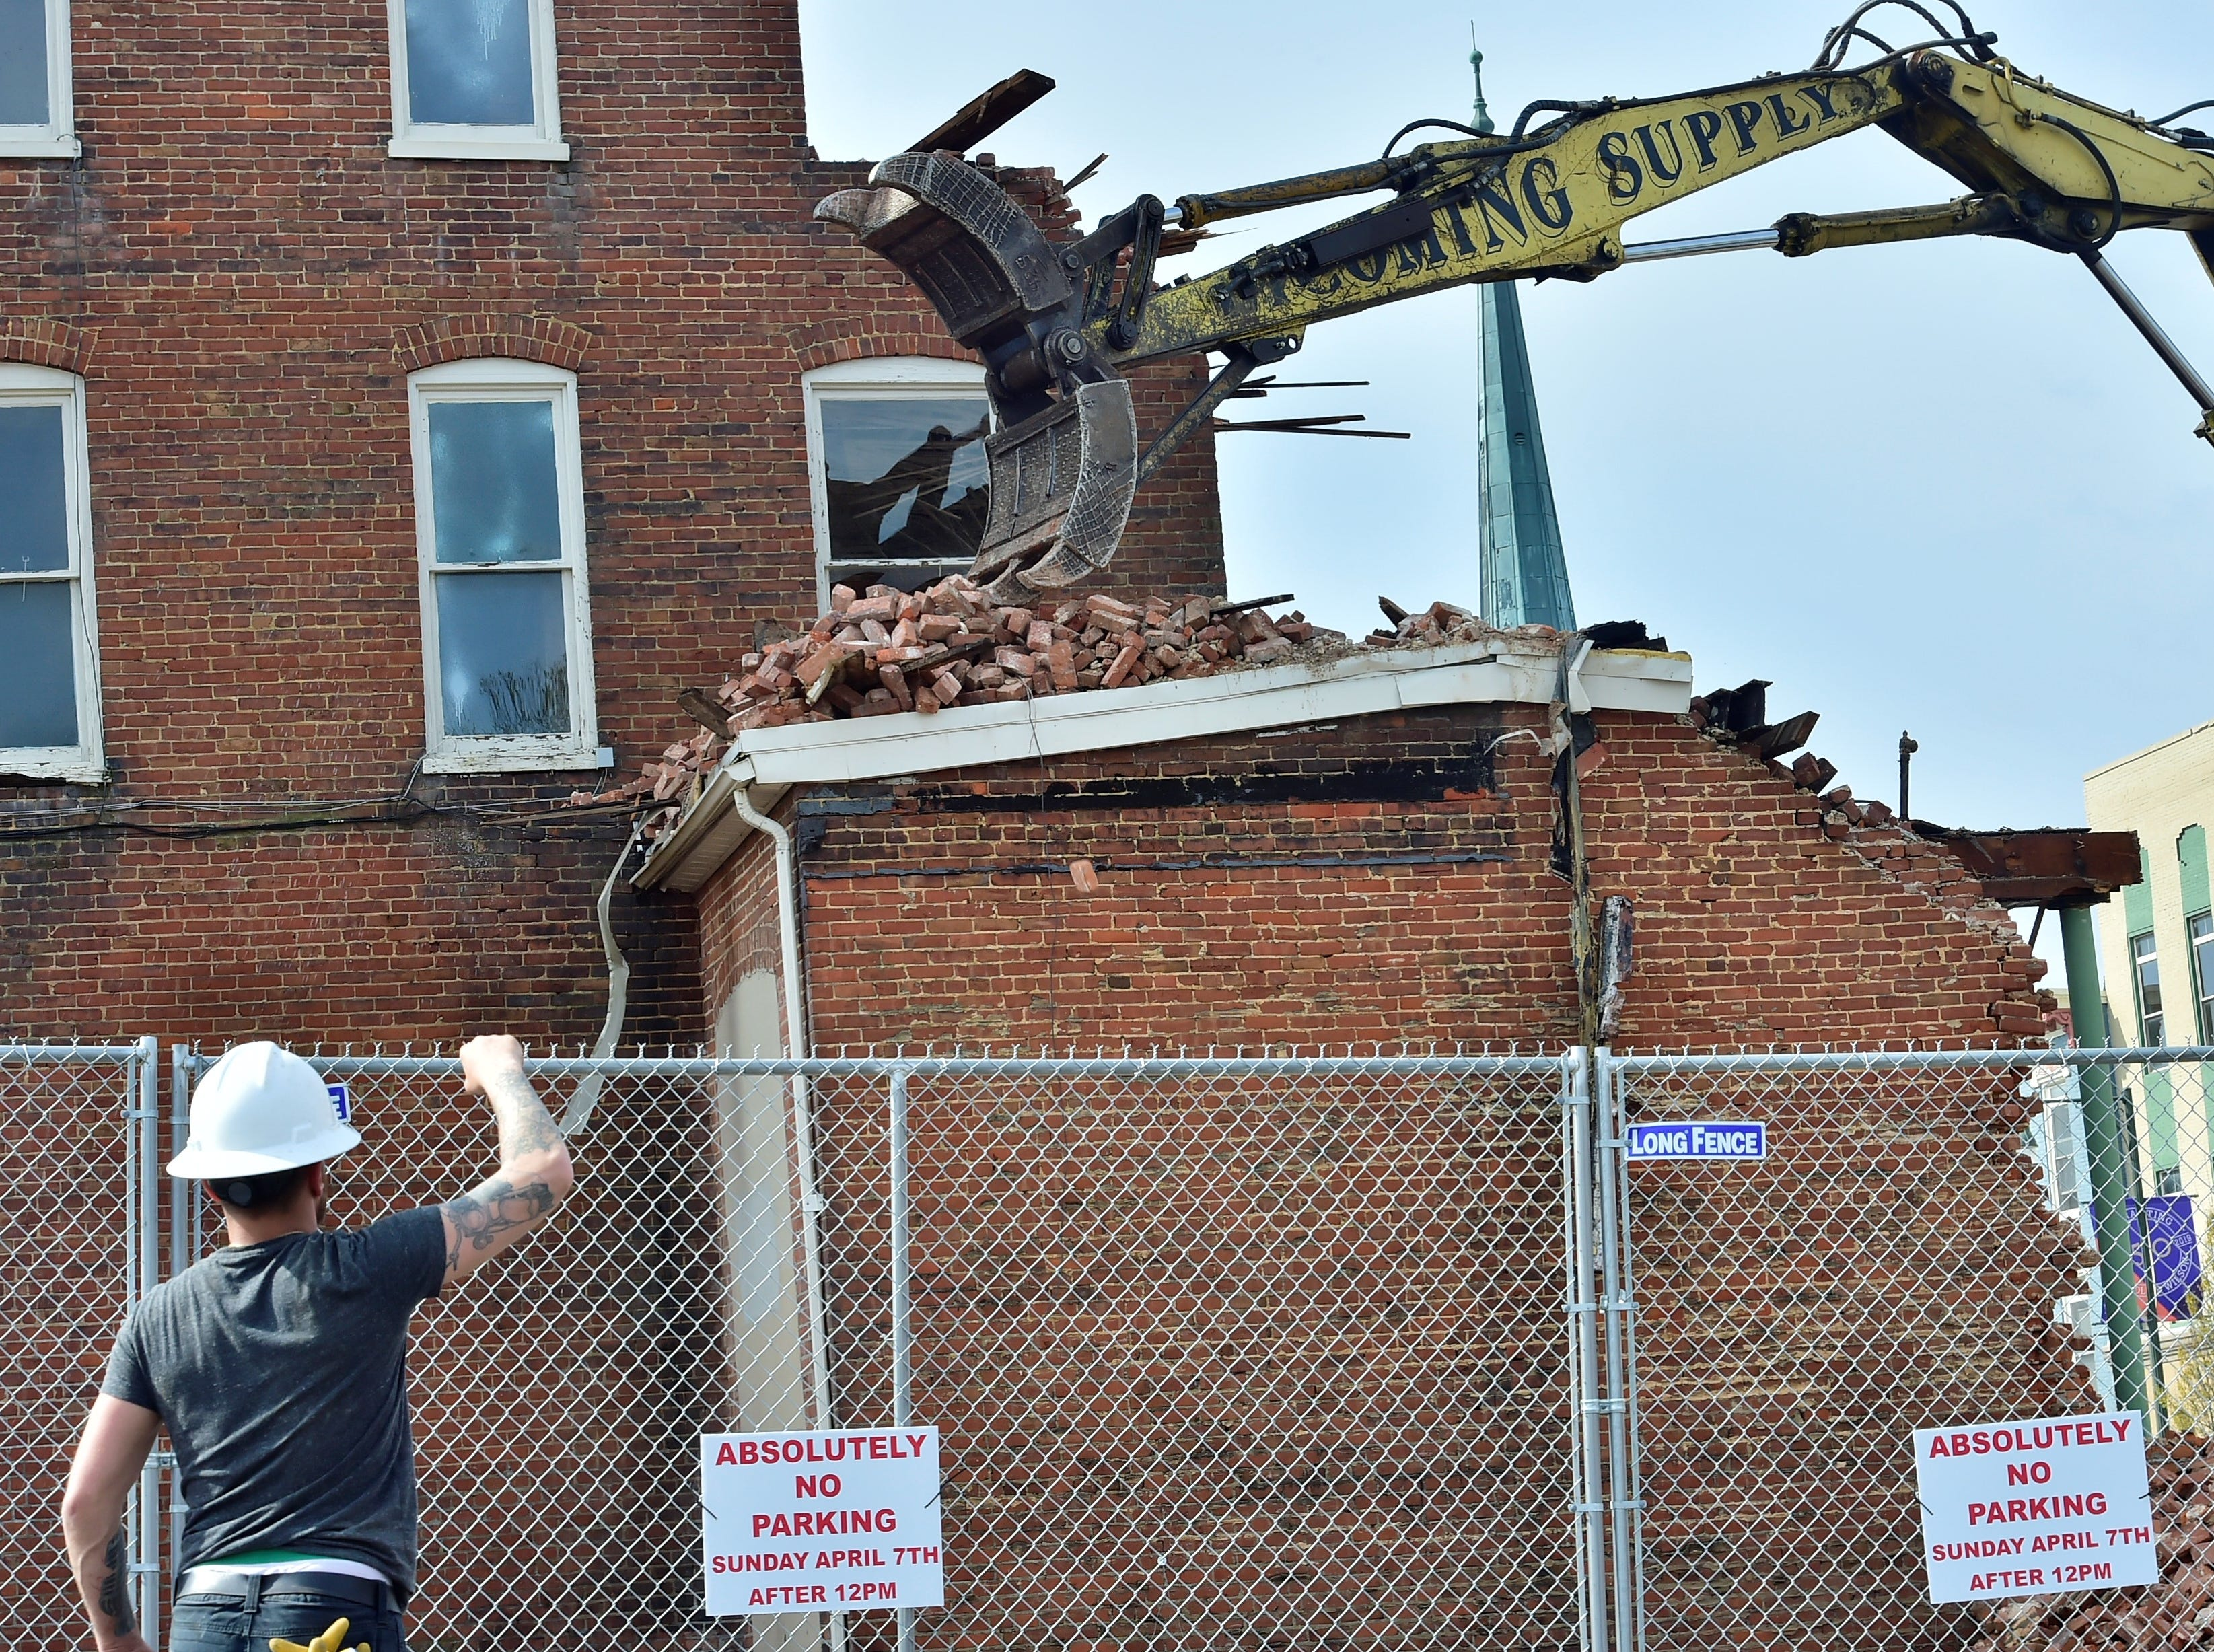 A man directs the operator of equipment being used to tear down the old Wogan's Uniform building on North Main Street, Chambersburg, on Tuesday, April 9, 2019. Traffic will be limited to one lane through the end of the week as work continues. Lycoming Supply is tearing down structures in the first block of North Main Street as part of the $67.8 million Franklin County Court Facility Improvement Project. A judicial center will be built in the space.